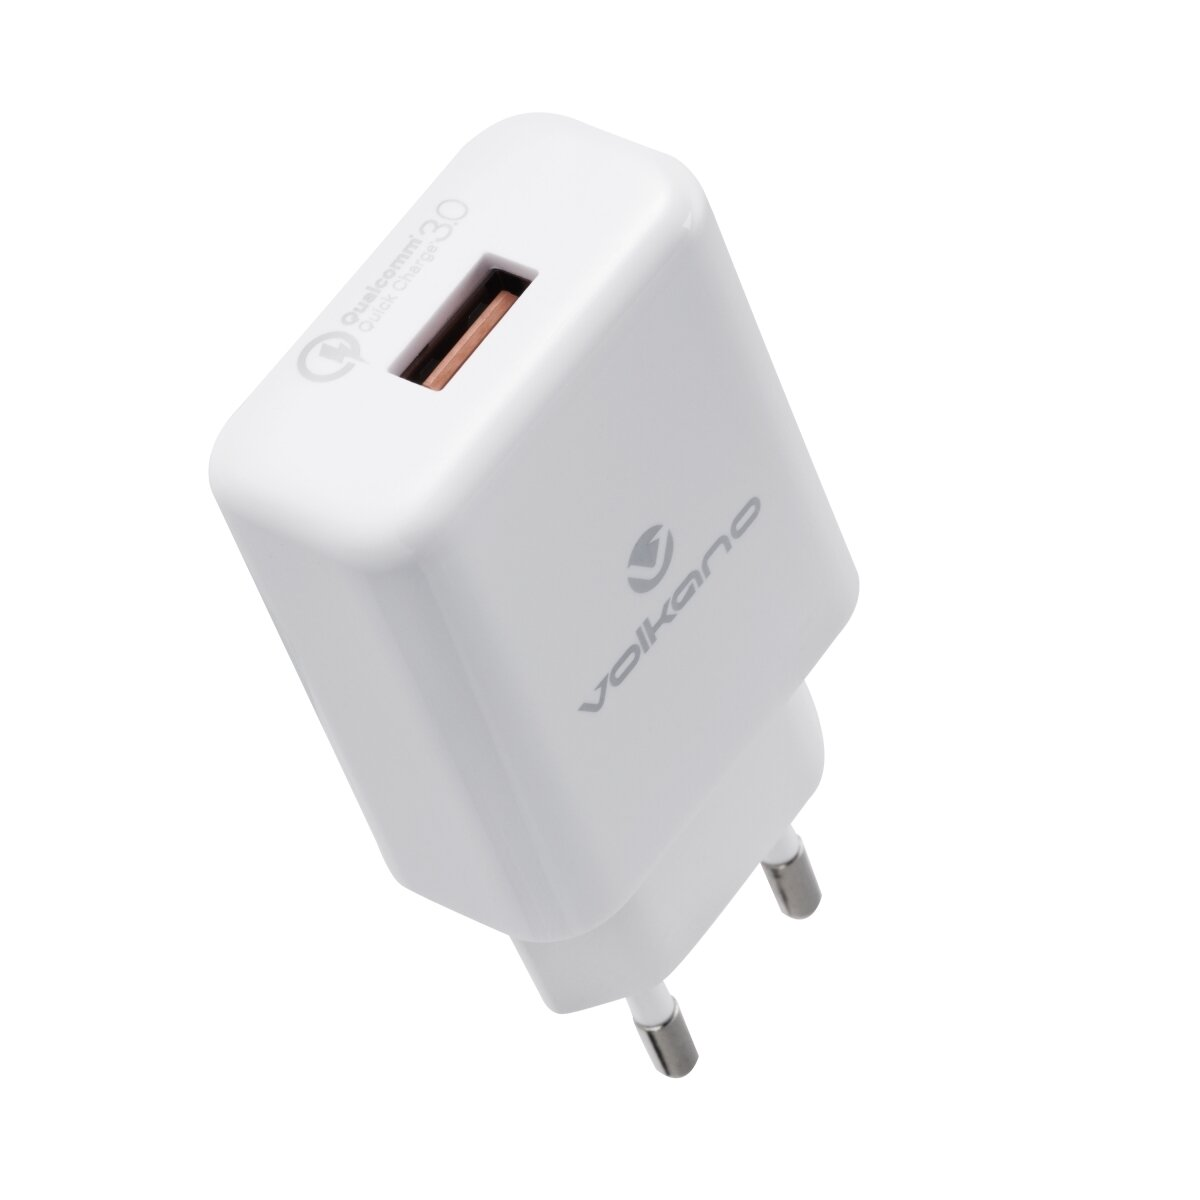 Volkano Electro series Q.C. 3.0 Quick charge charger